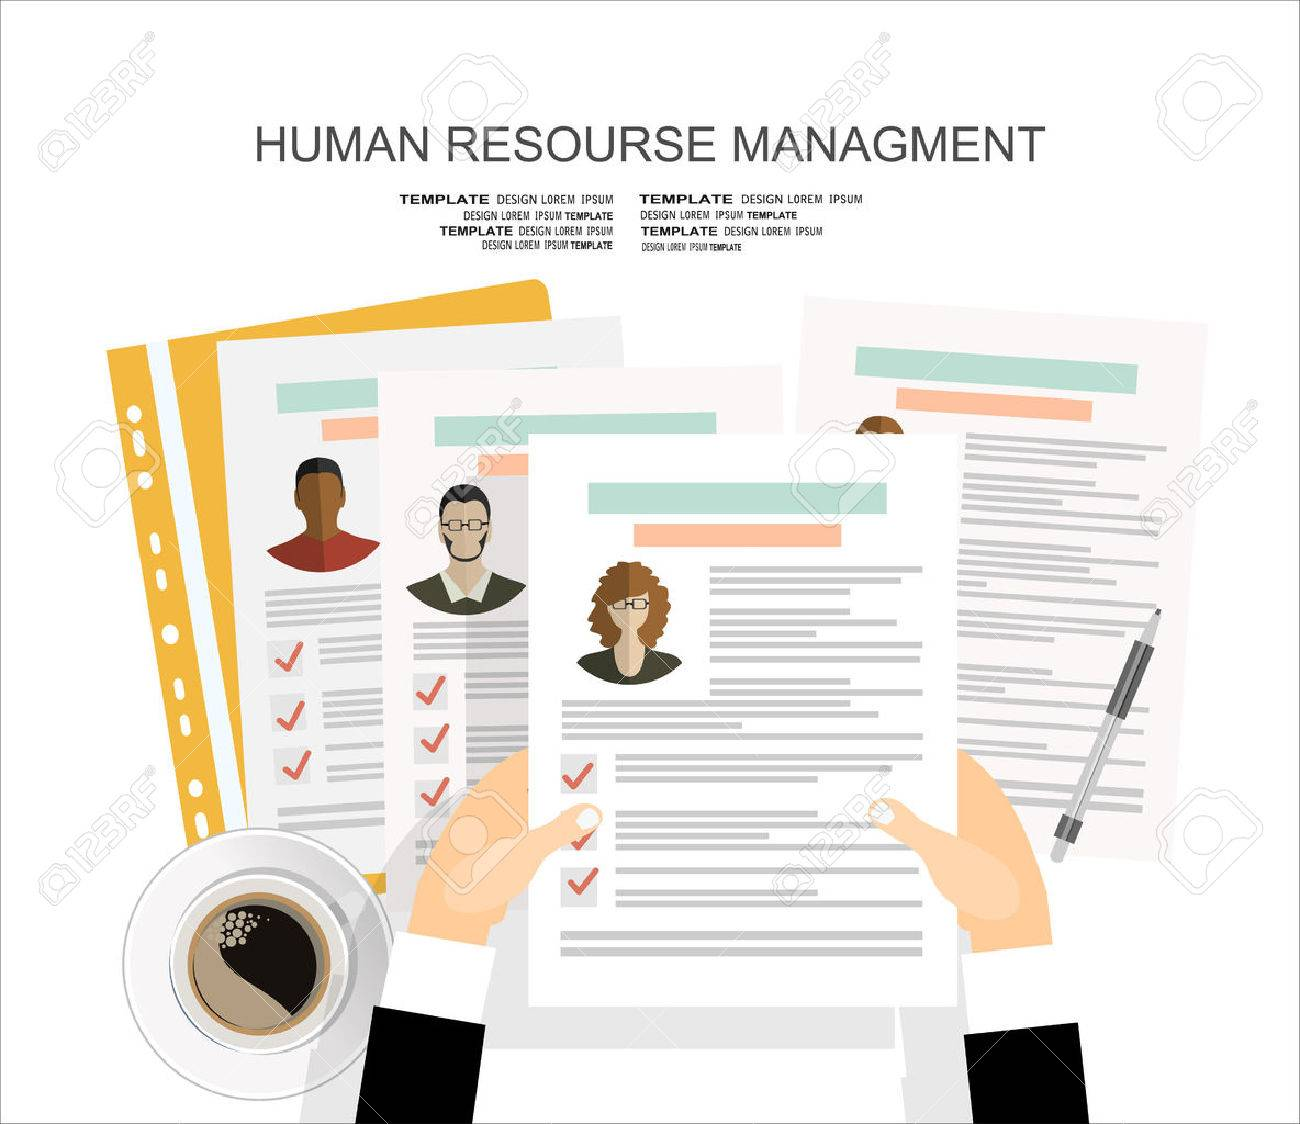 picture of printed cvs flat style banner design of human resource